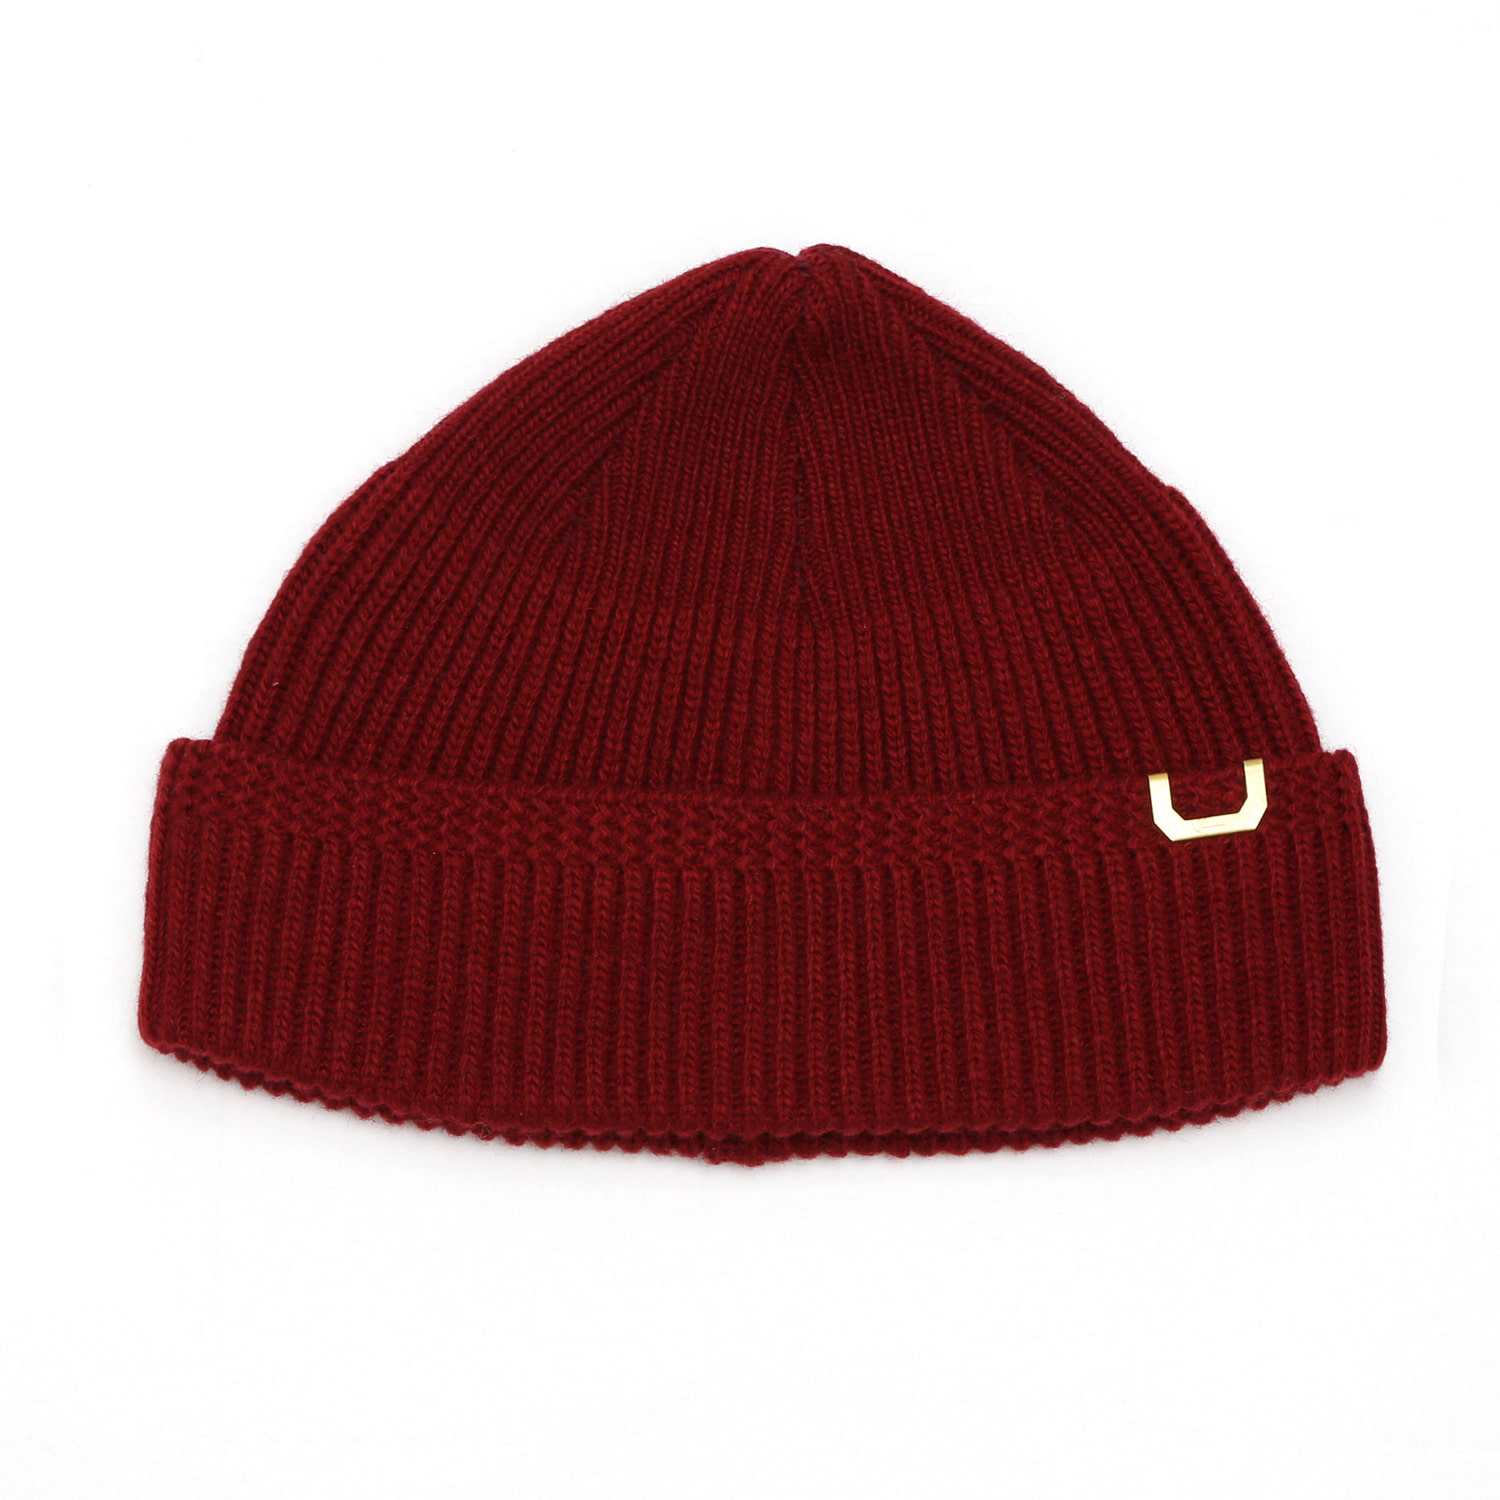 WATCH CAP / LAMBS WOOL / PS WINE